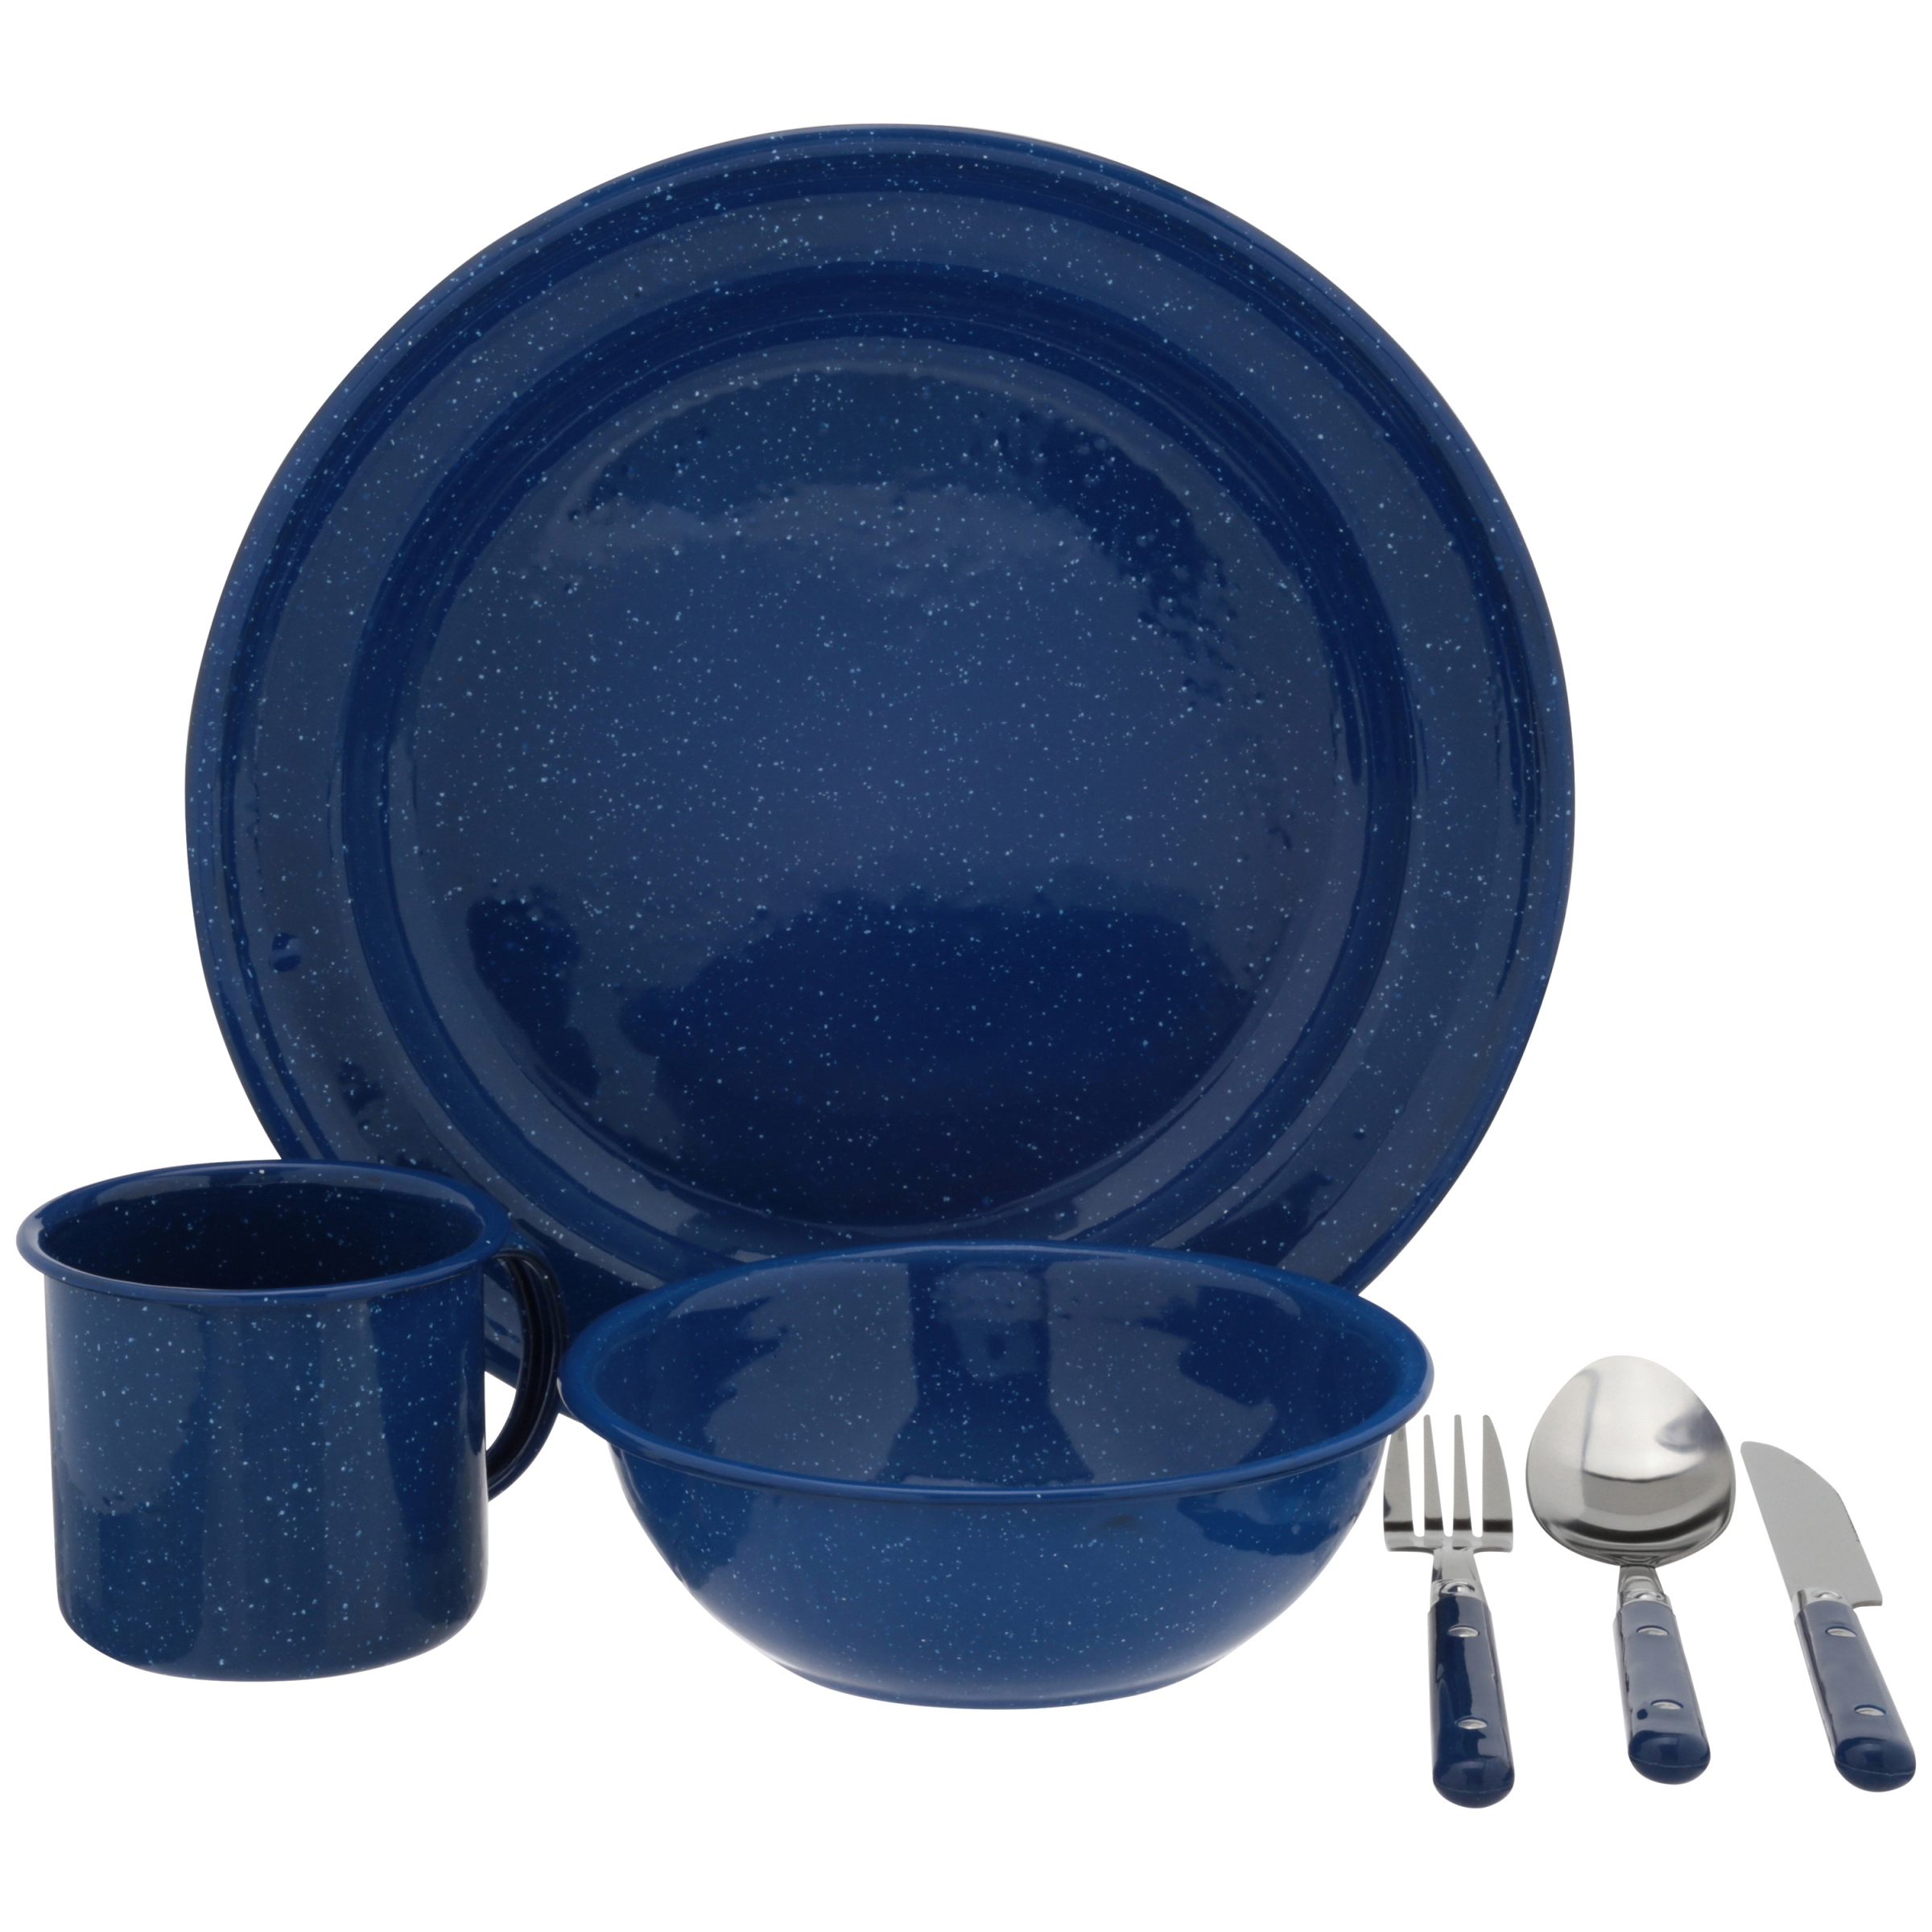 Ozark Trail 24-Piece Dinnerware Set Blue  sc 1 st  Walmart & Ozark Trail 24-Piece Dinnerware Set Blue - Walmart.com